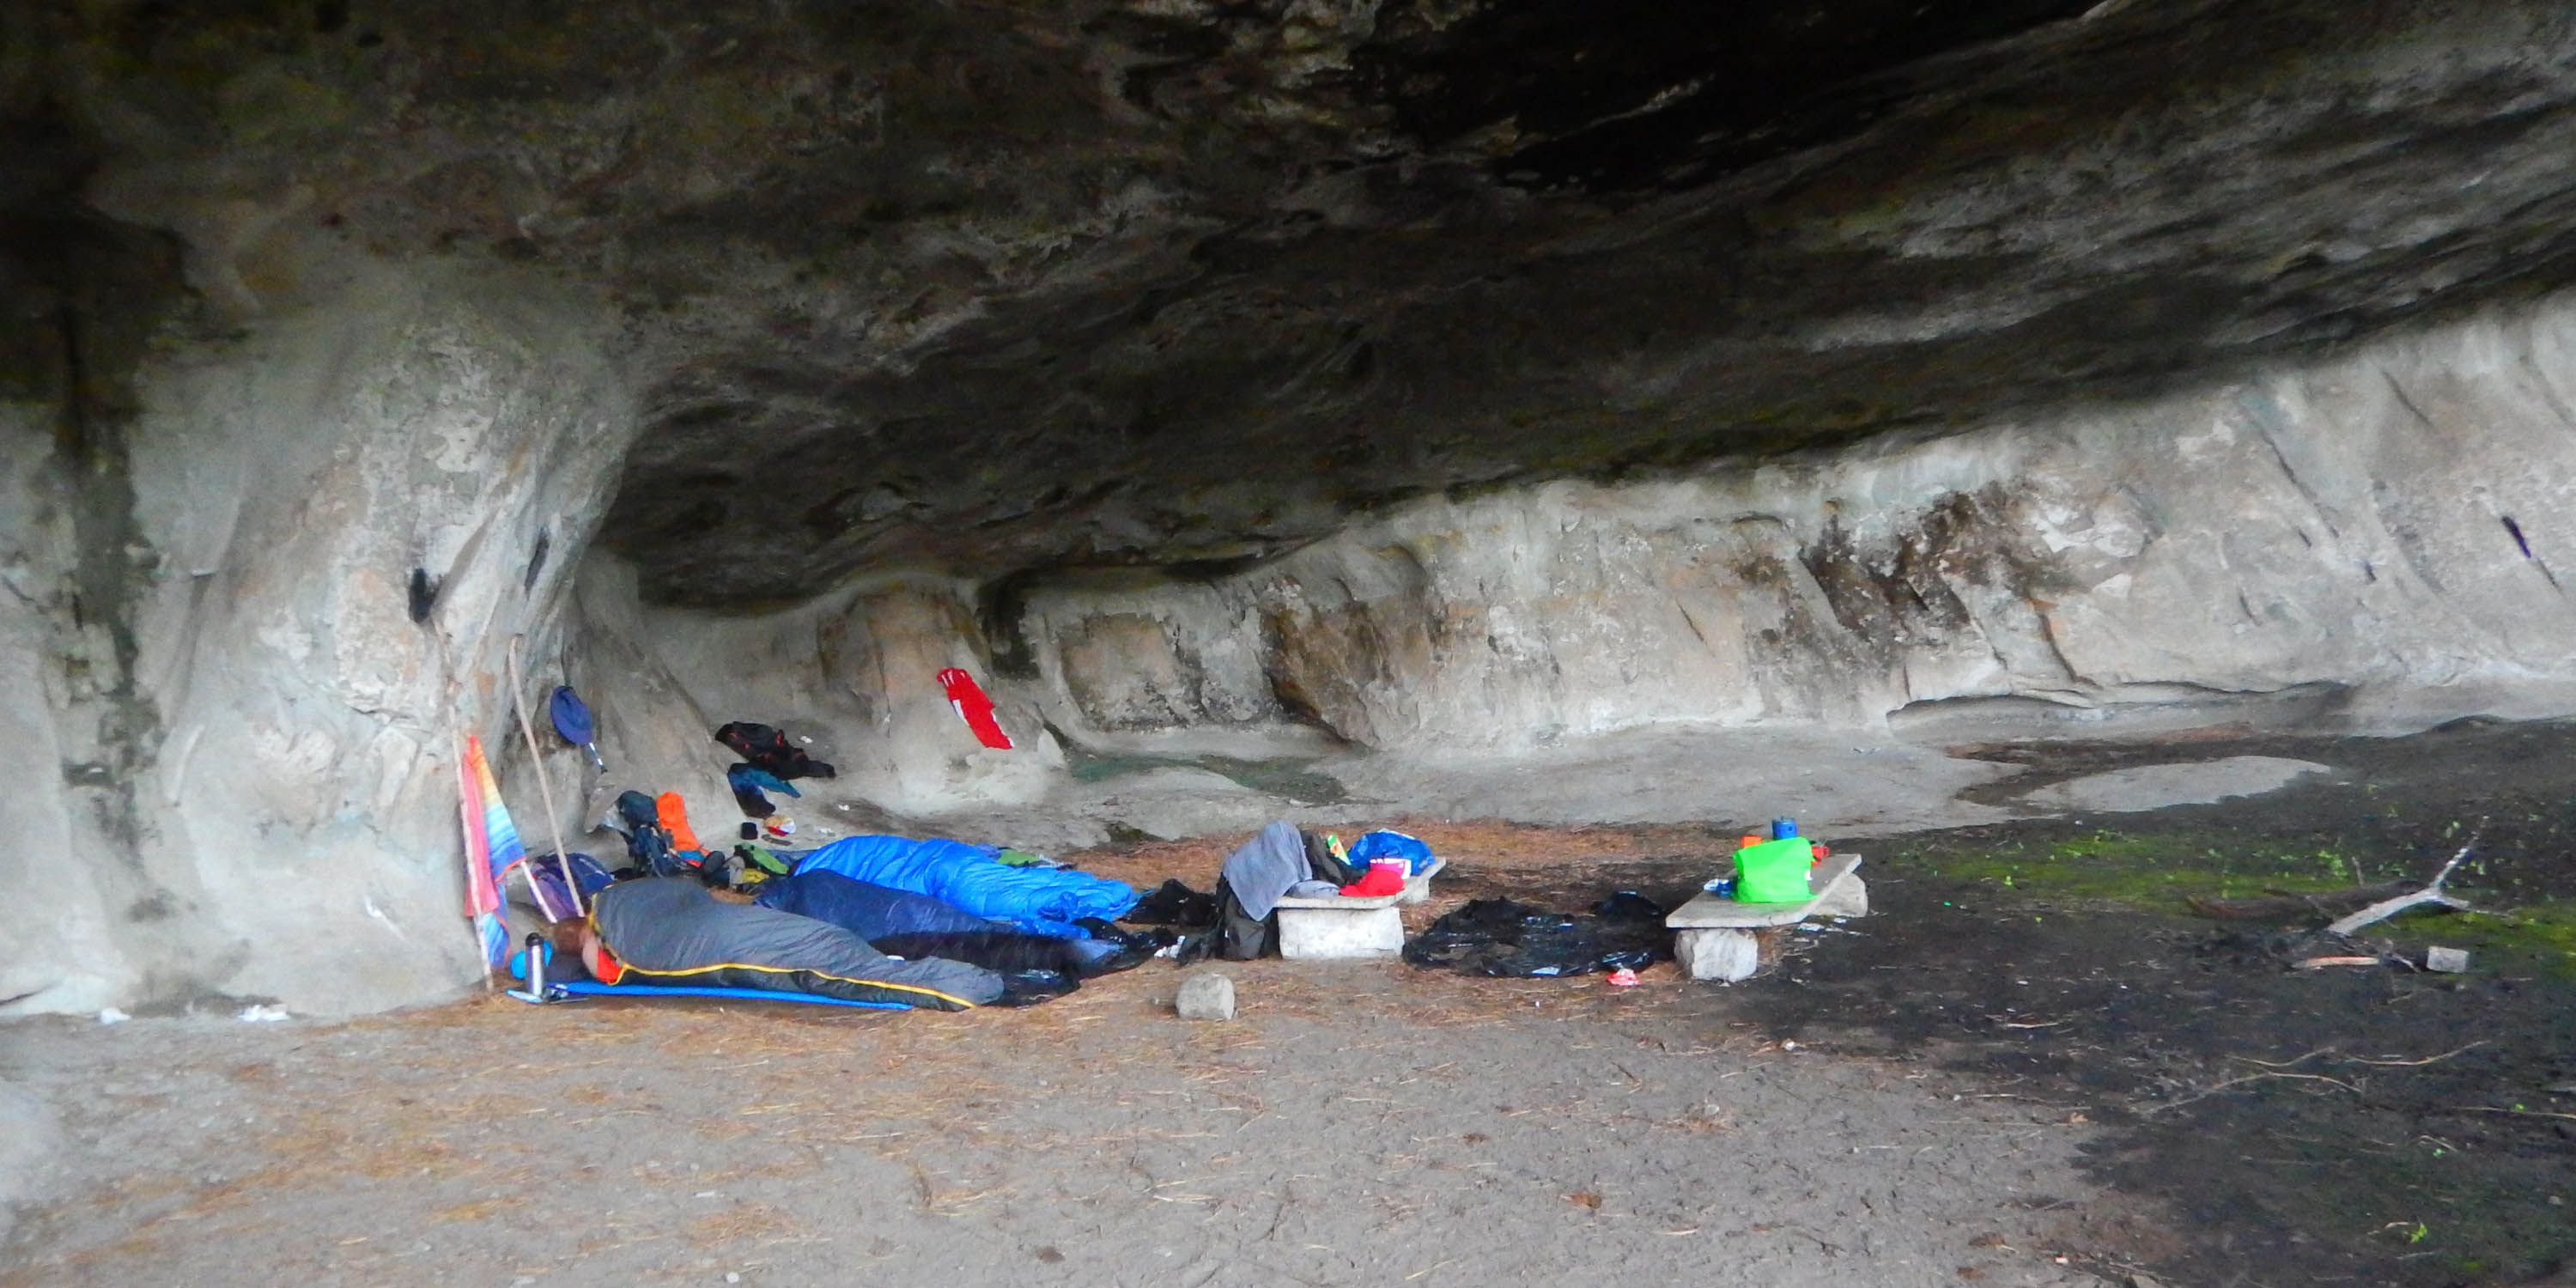 Xeni Cave large enough for 12 hikers